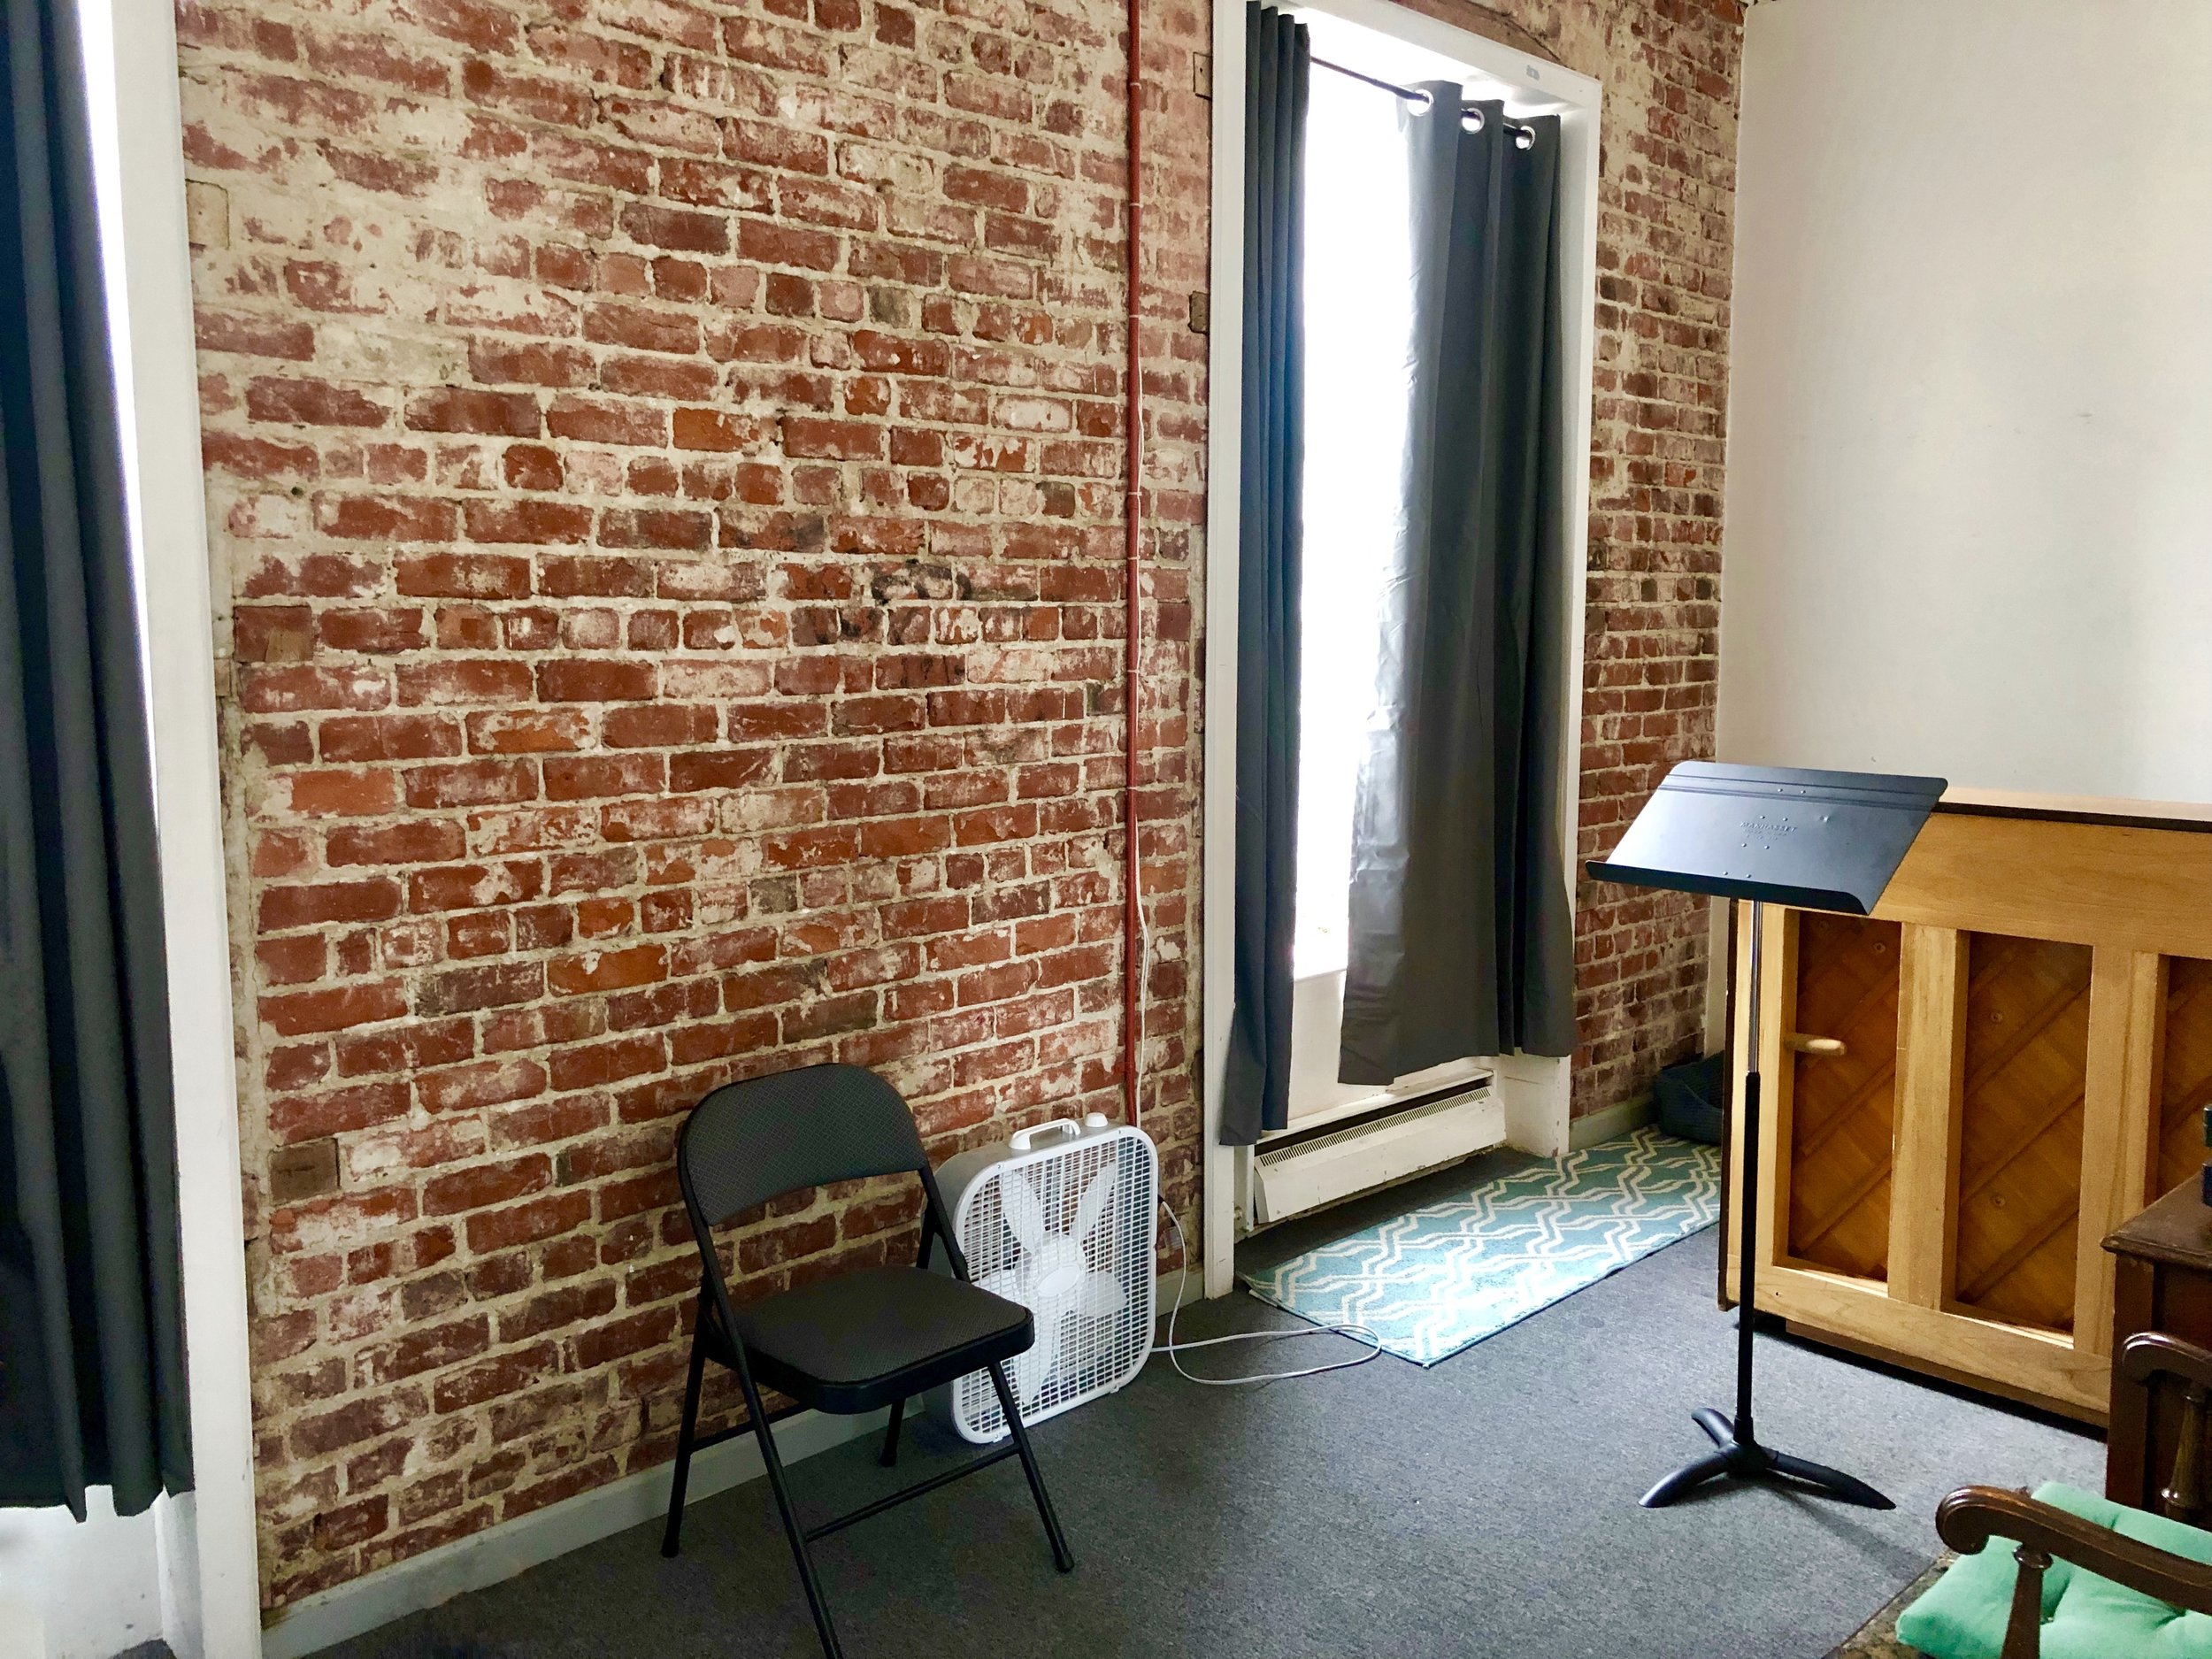 Studio 4 Uses: Lessons, practice, rehearsals for 3-5 people, meetings